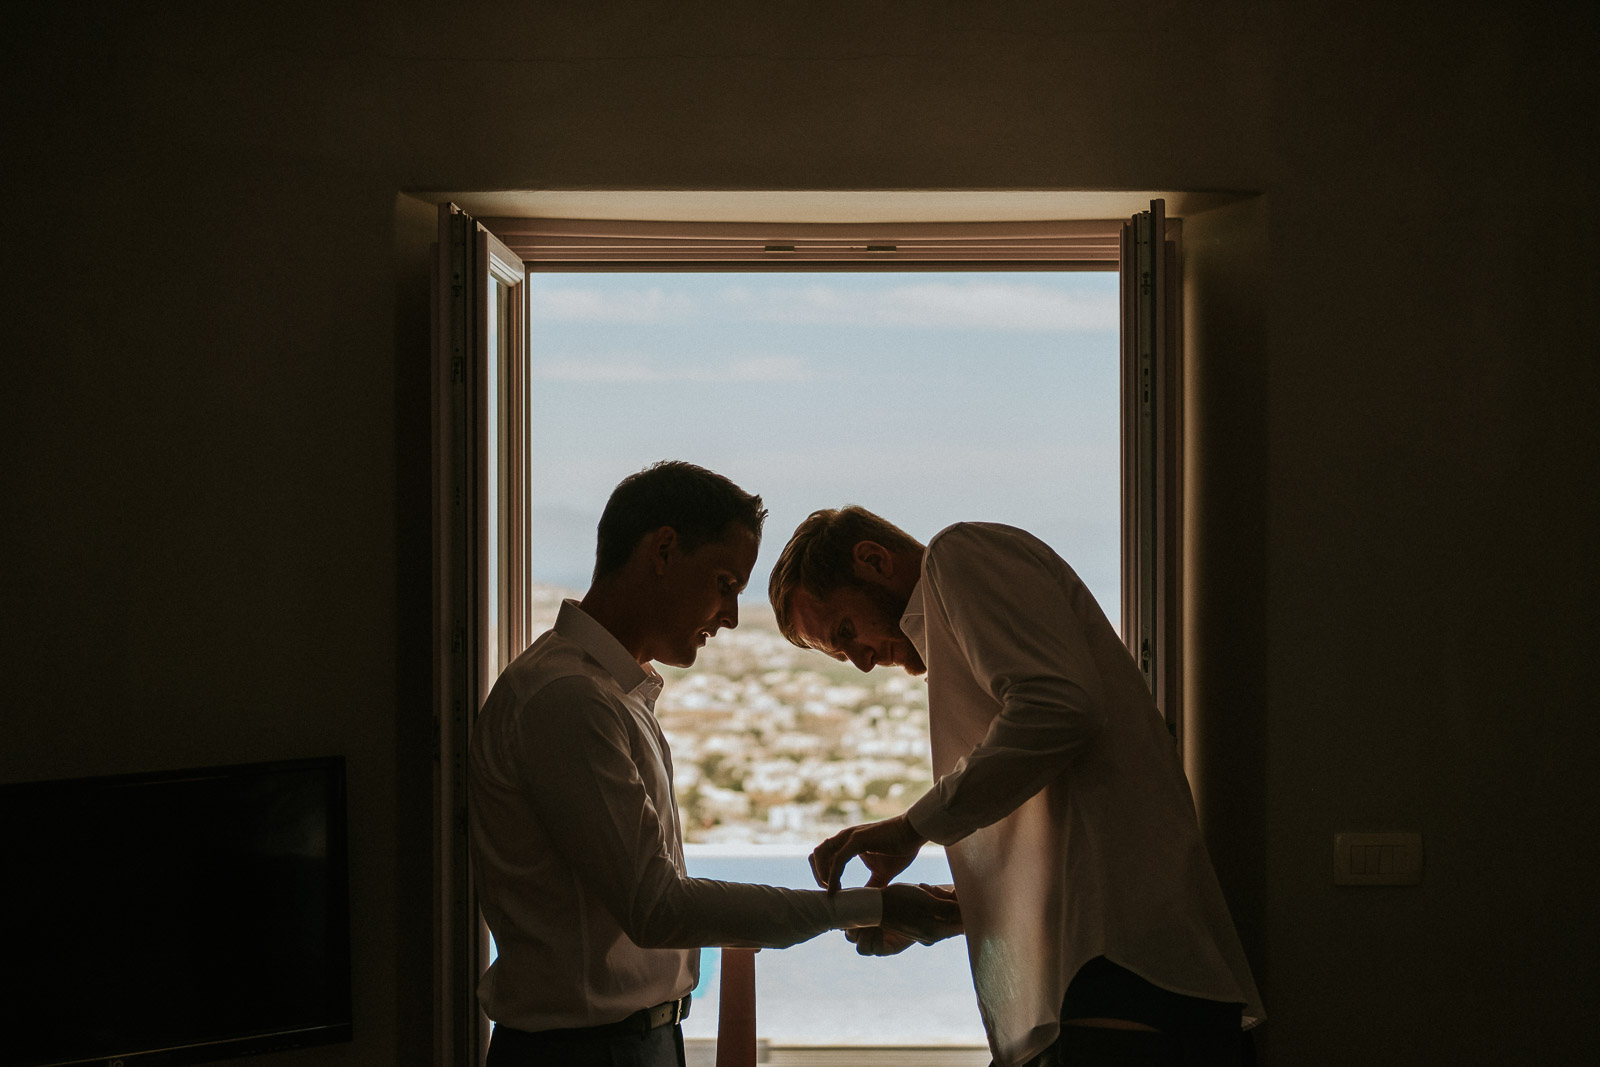 Santorini-Wedding-Photographer-Greece-Destination-Weddings-Mait-Juriado-M&J-Studios-024